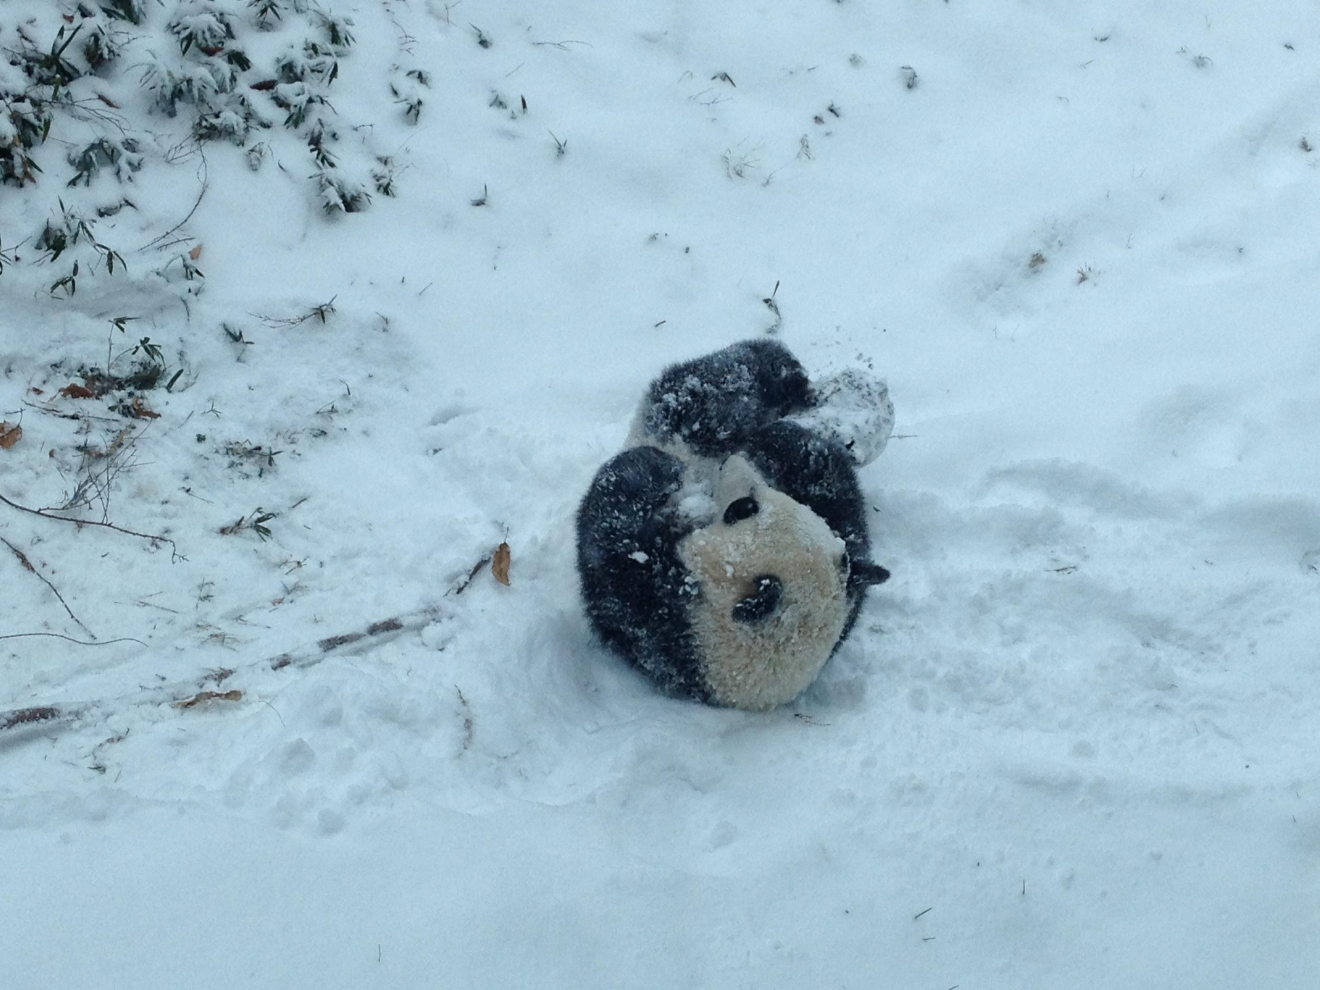 Bao Bao's first snow day -January 6, 2015. (Image courtesy of Devin Murphy, Smithsonian's National Zoo)